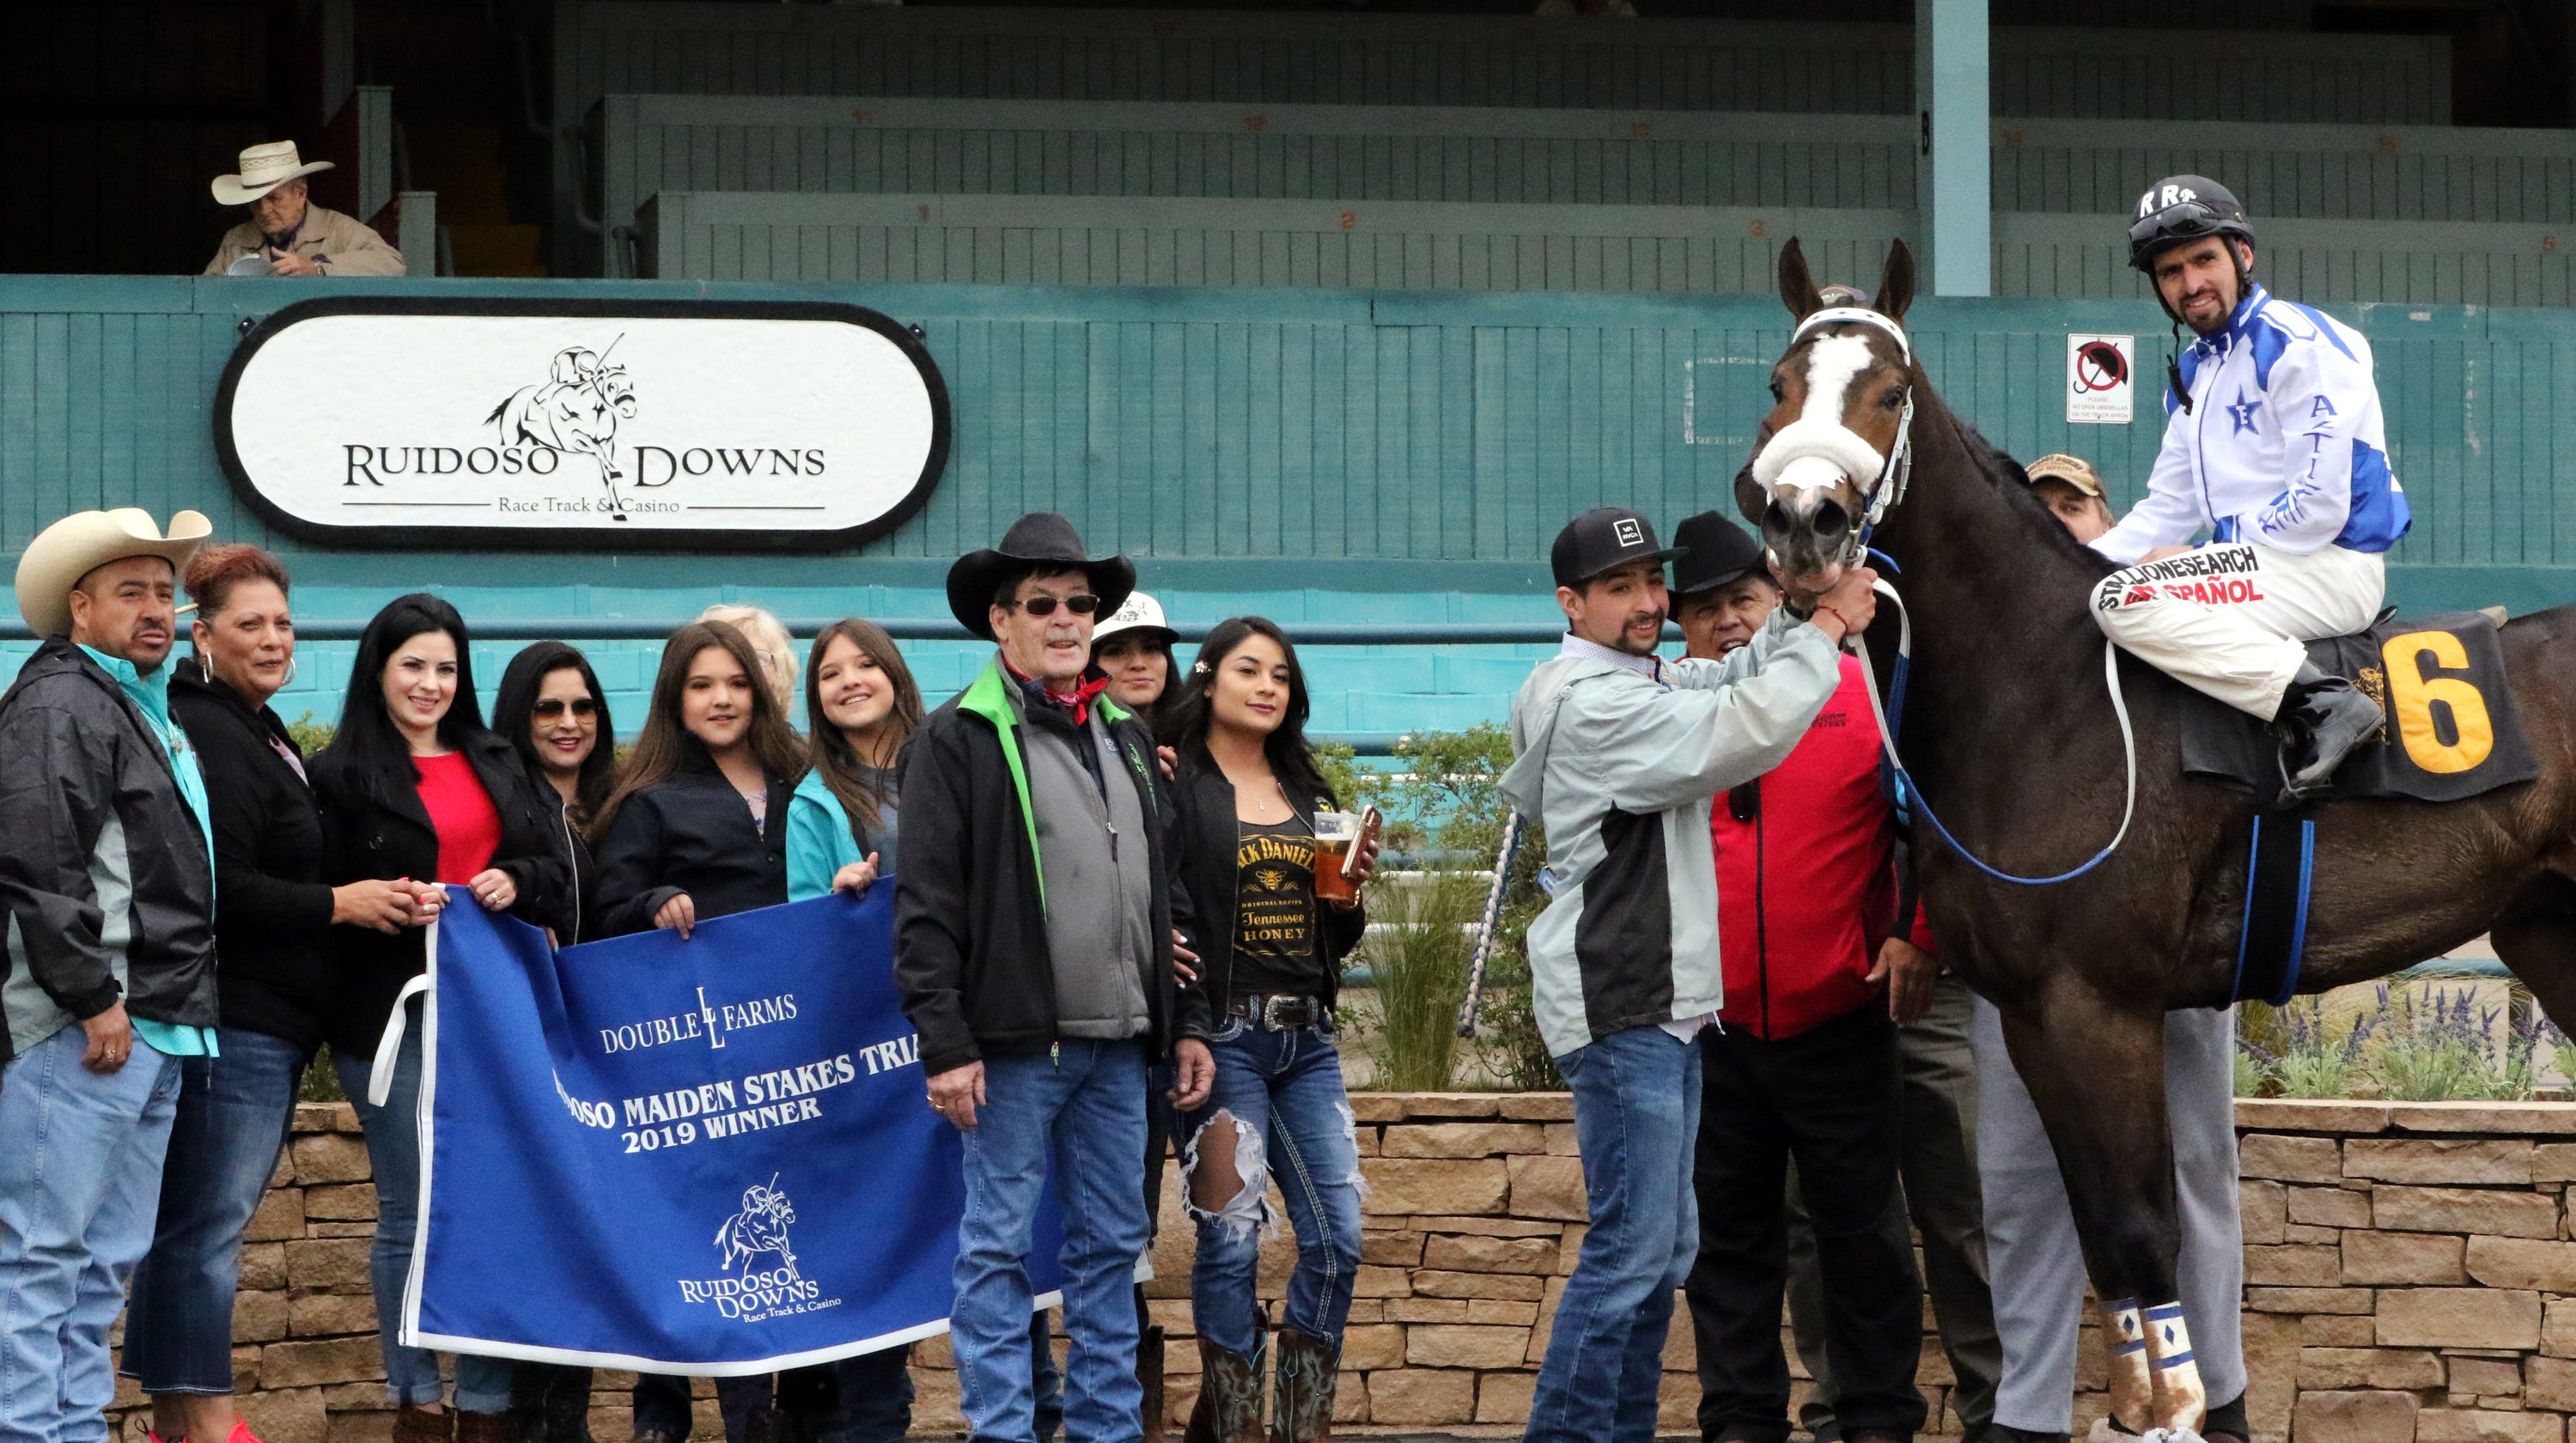 Ruidoso Downs Maiden Stakes Trials a big hit for horse